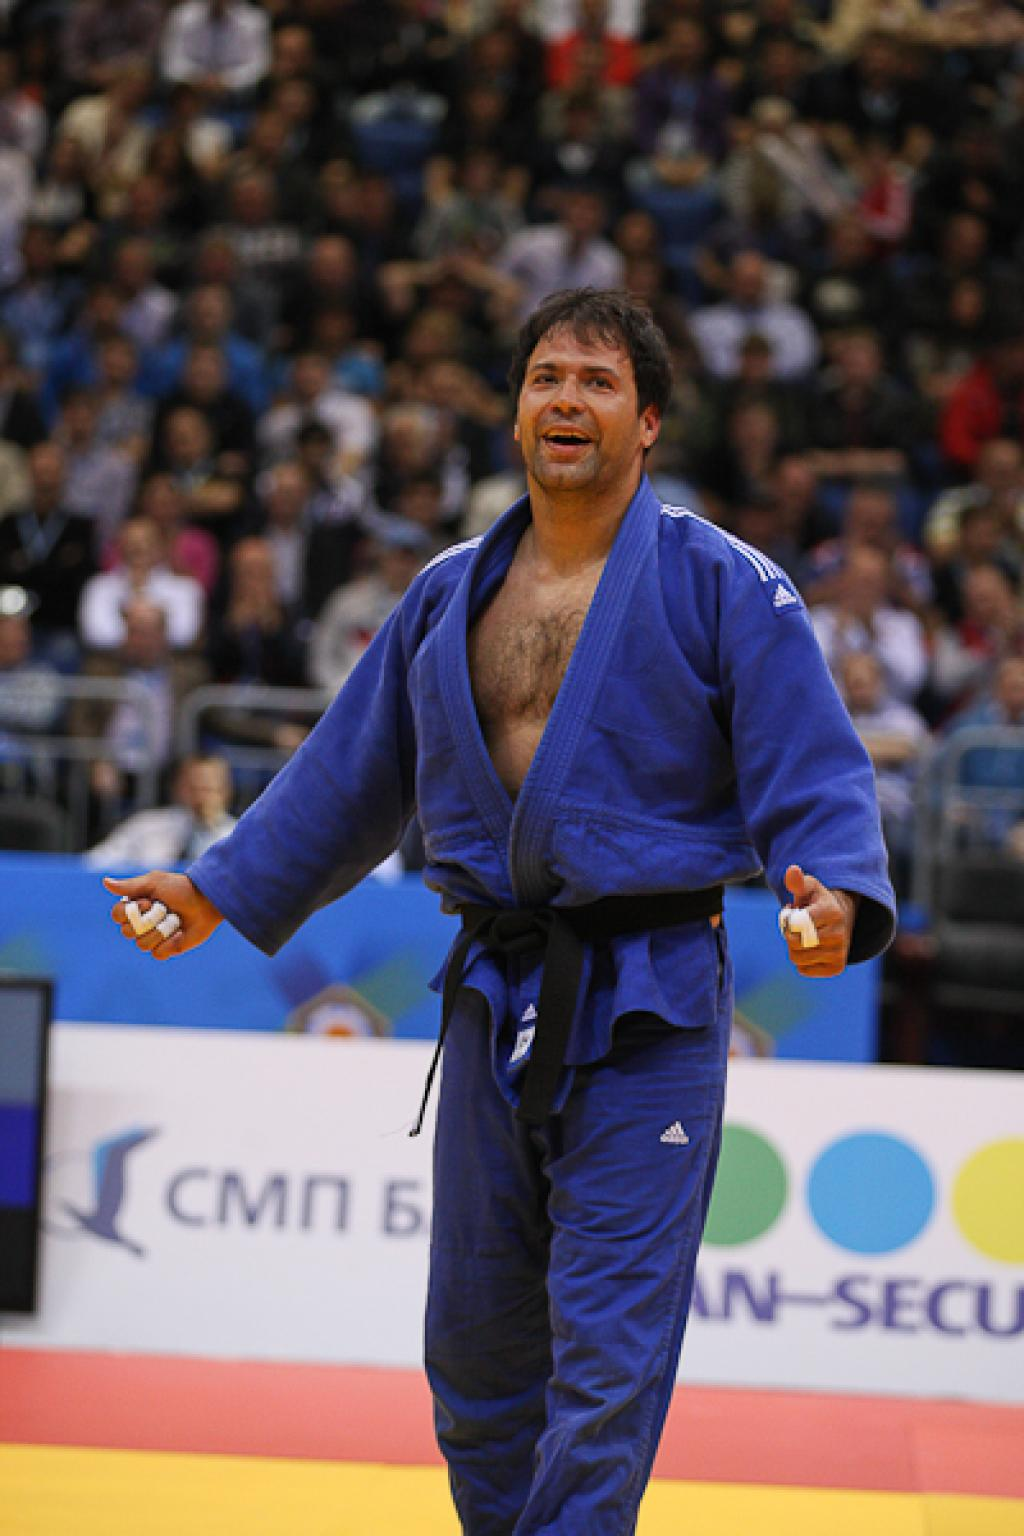 Ariel Zeevi surprises everybody with fourth European title aged 35